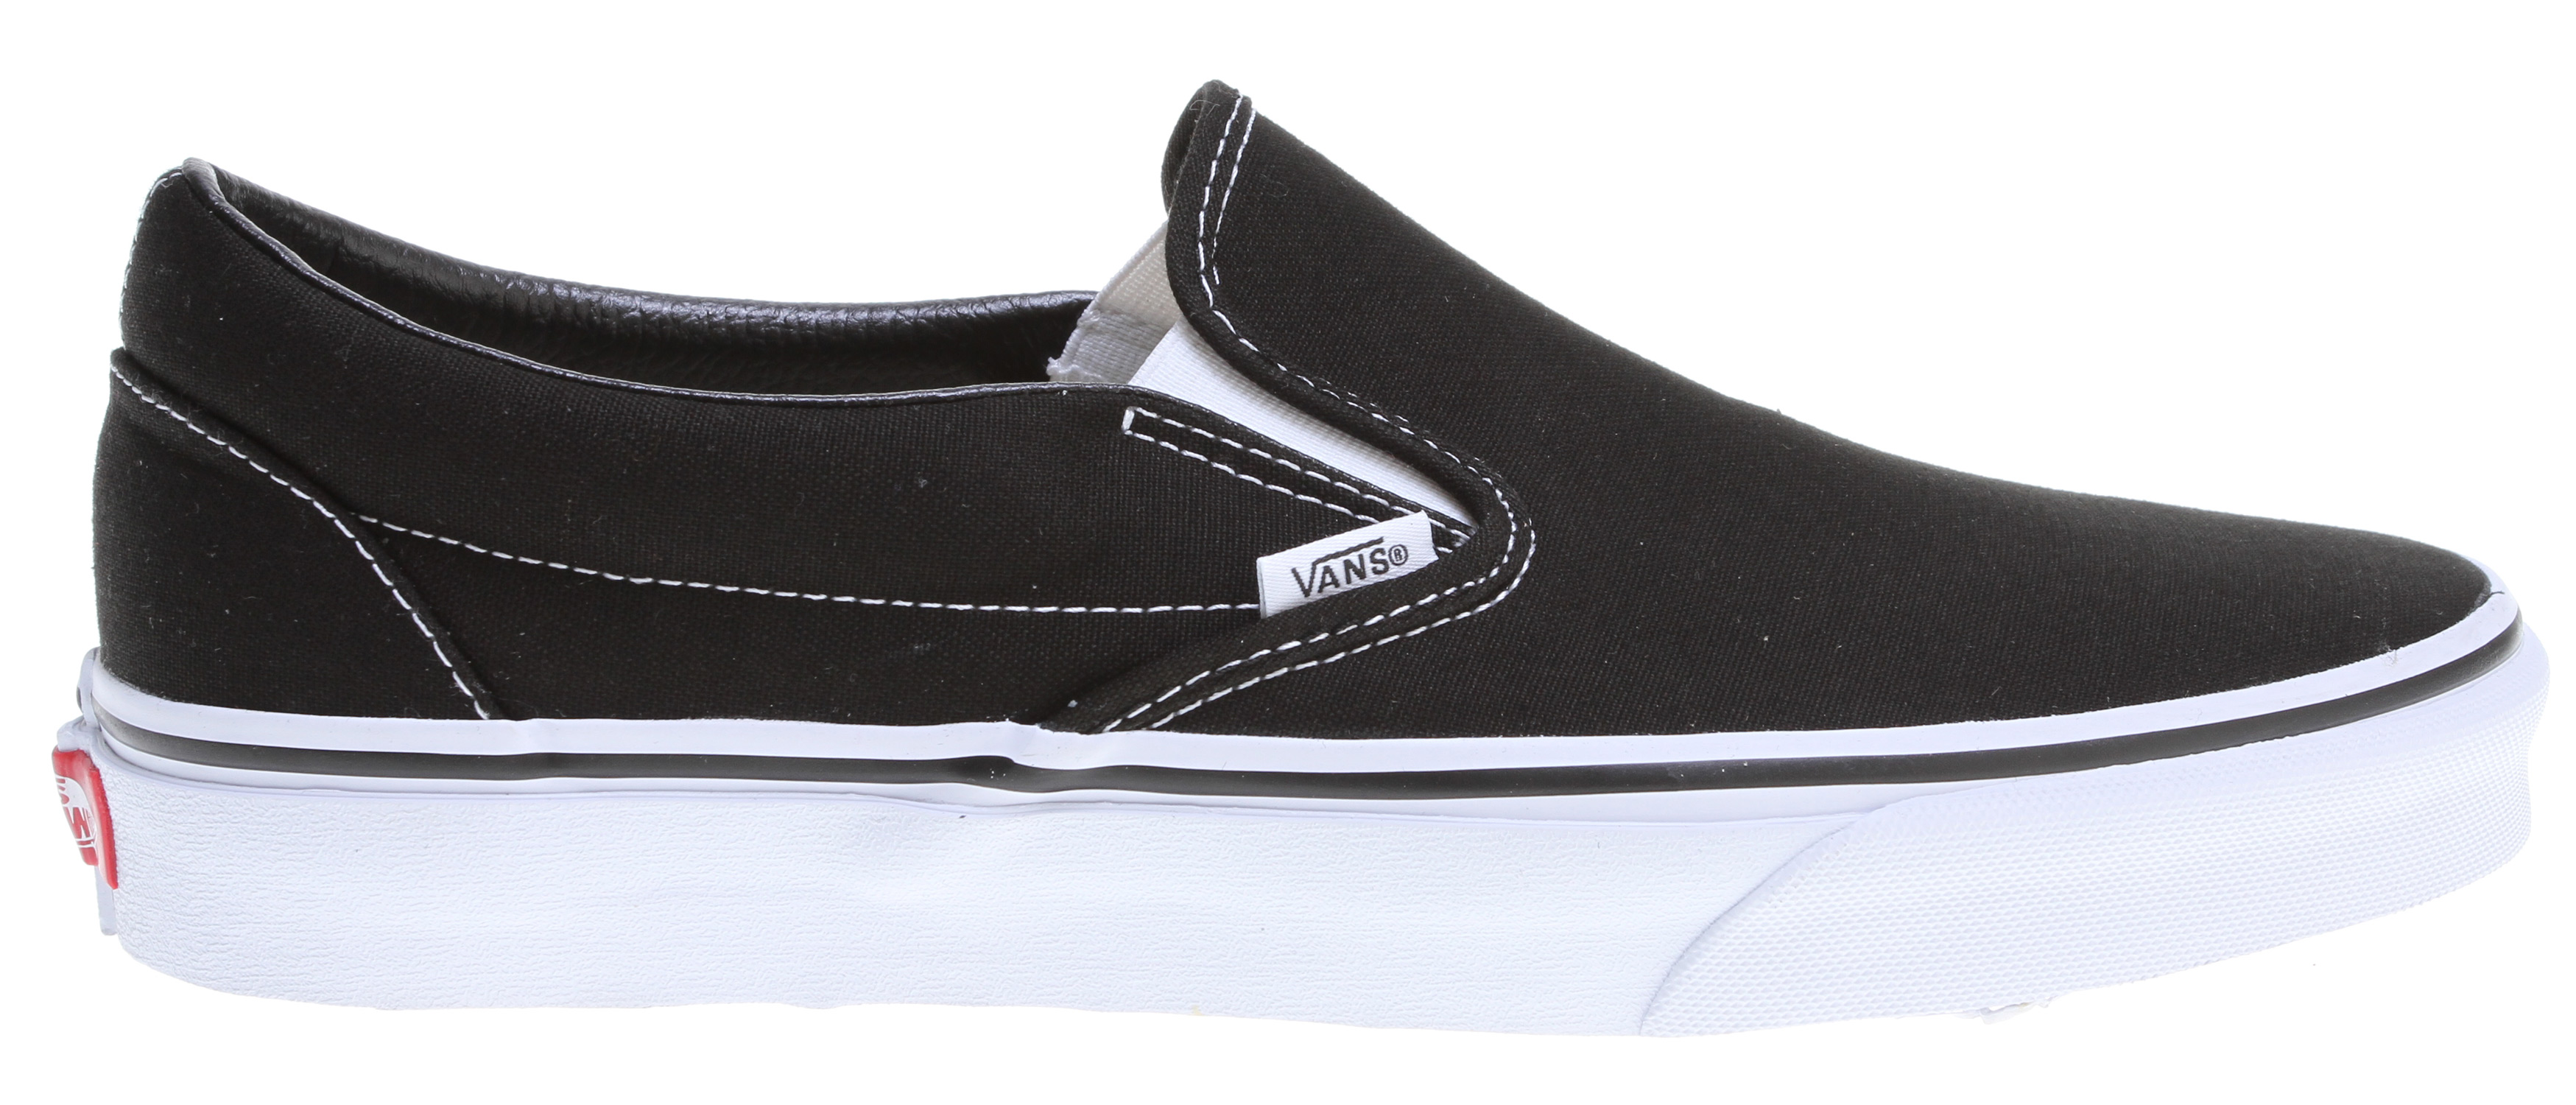 Skateboard Every skater remembers his first pair of Vans--and you can relive the good days with a pair of these Vans Classic Slip On skate shoes. It's everything you love about the traditional Vans design: easy to put on, yet secure on your feet; rugged canvas uppers that can withstand your sickest tricks; and a vulcanized rubber waffle-pattern sole for balance and durability. Get the look and feel of the most iconic skate shoe around with the Vans Classic line, and prepare to remember why the brand is king.Key Features of the Vans Classic Slip On Shoes: Canvas uppers. Classic Slip-On construction. Vulcanized waffle outsoles. Unisex sizing. - $45.00